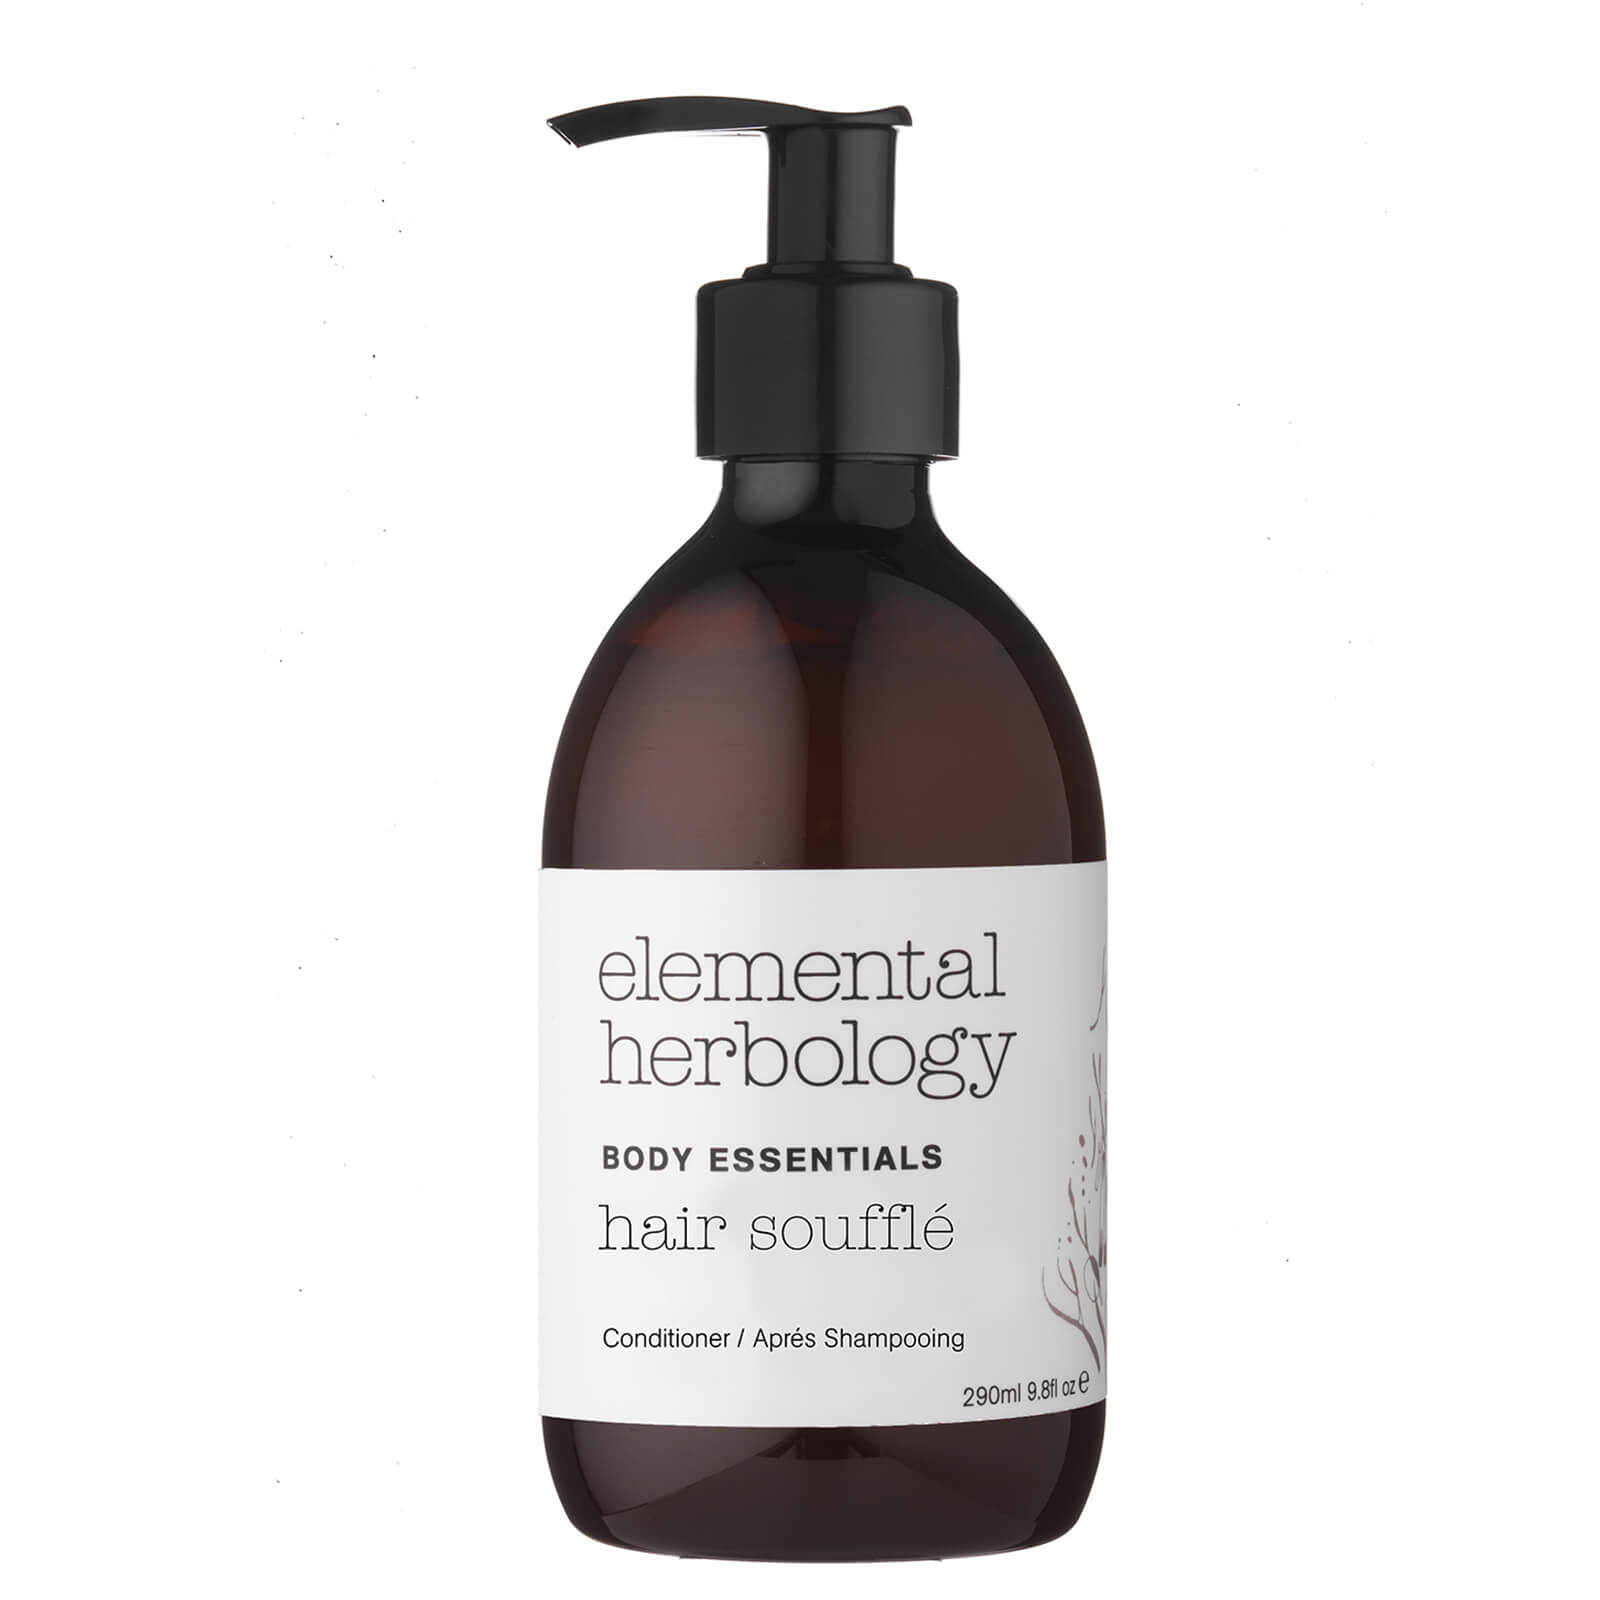 Hair Souffle Conditioner